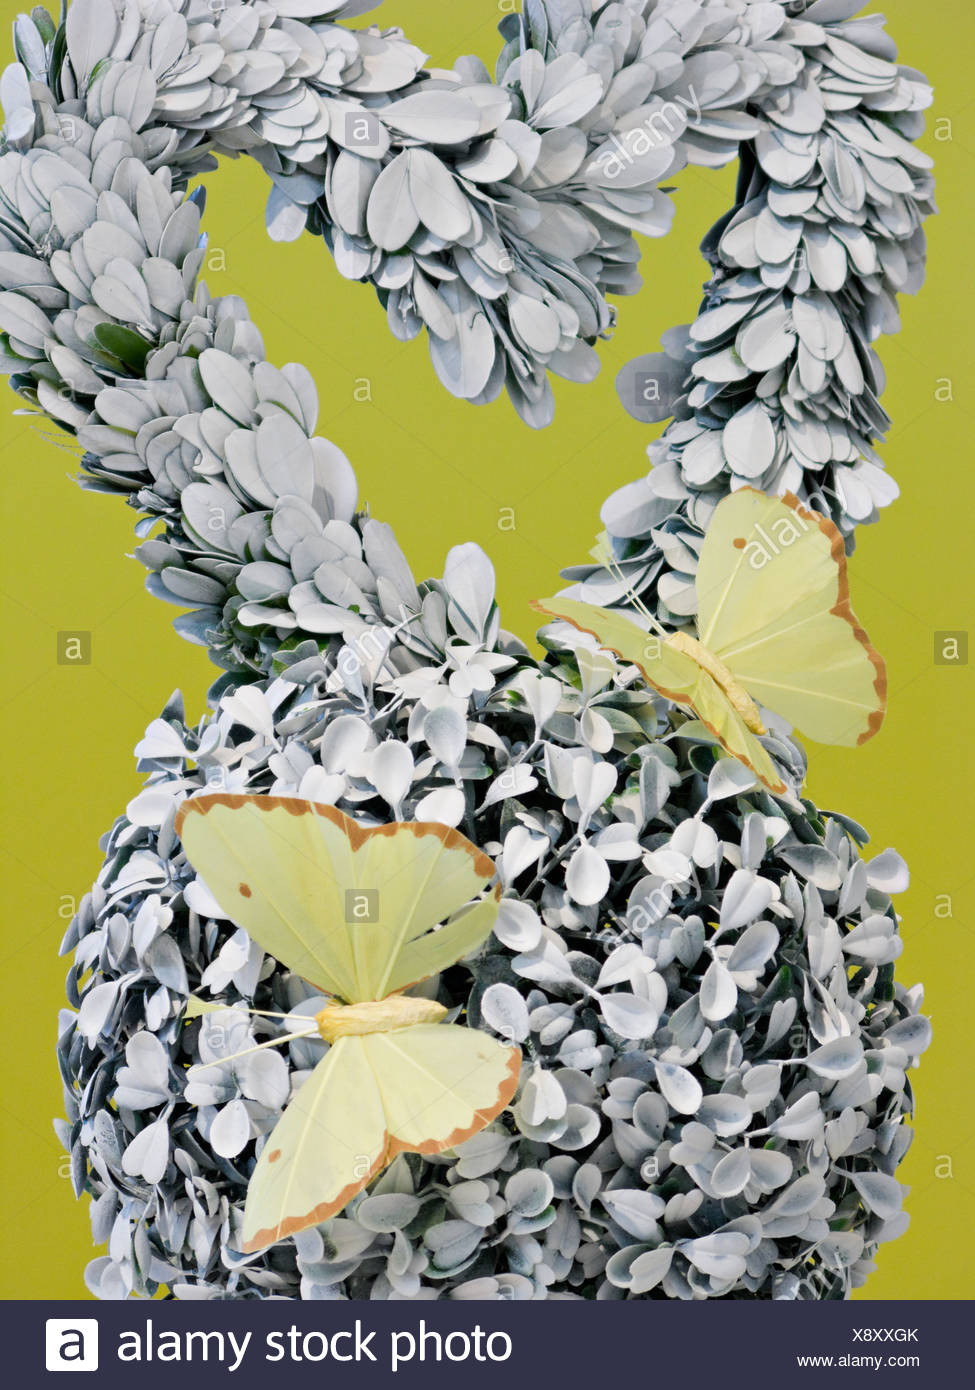 Ornament decorated with butterflies, Sweden. - Stock Image